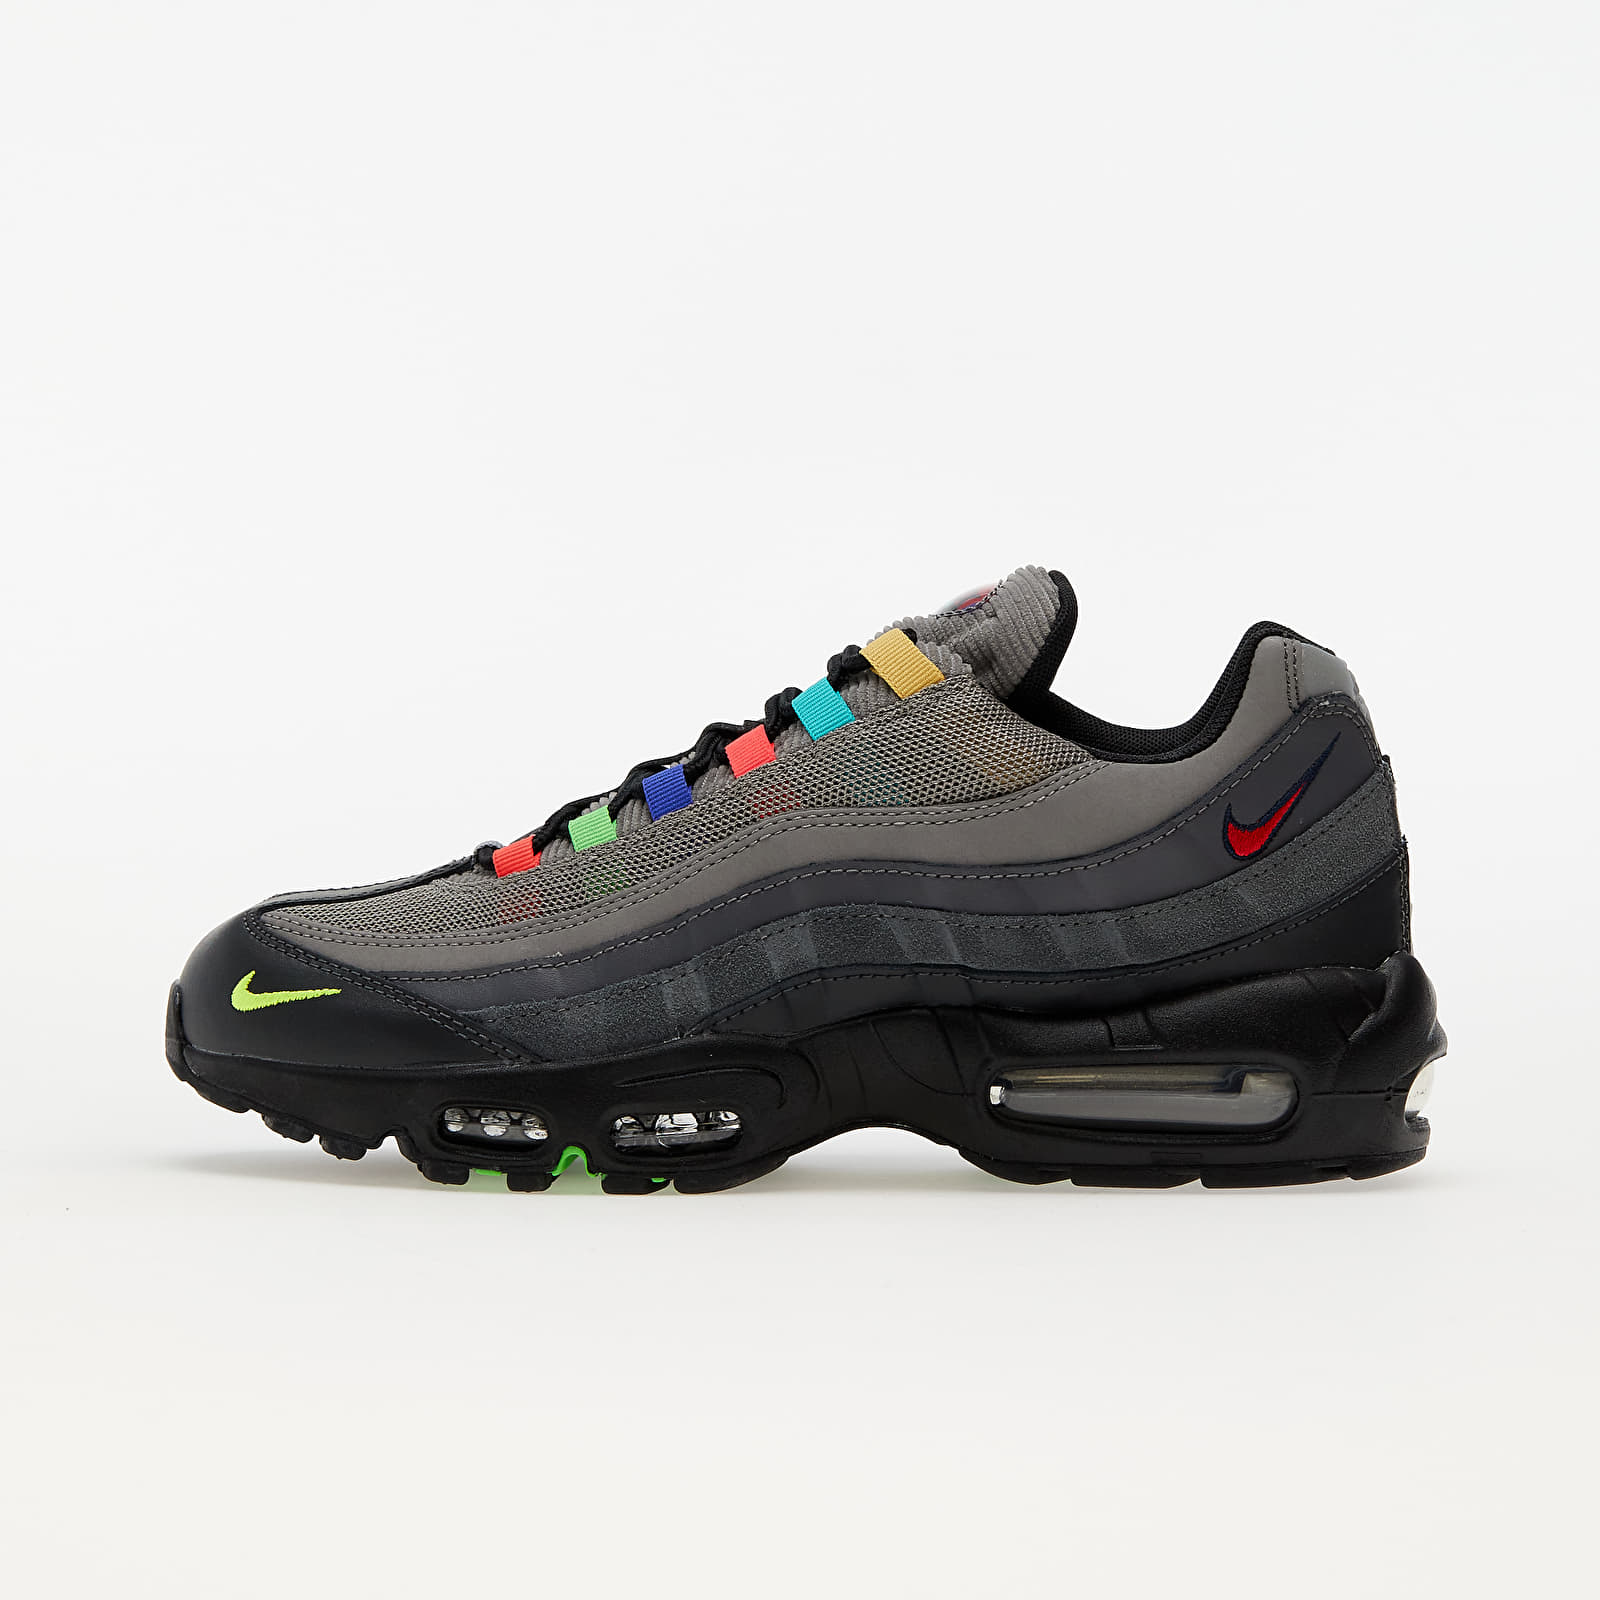 Nike Air Max 95 SE Light Charcoal/ University Red-Black EUR 45